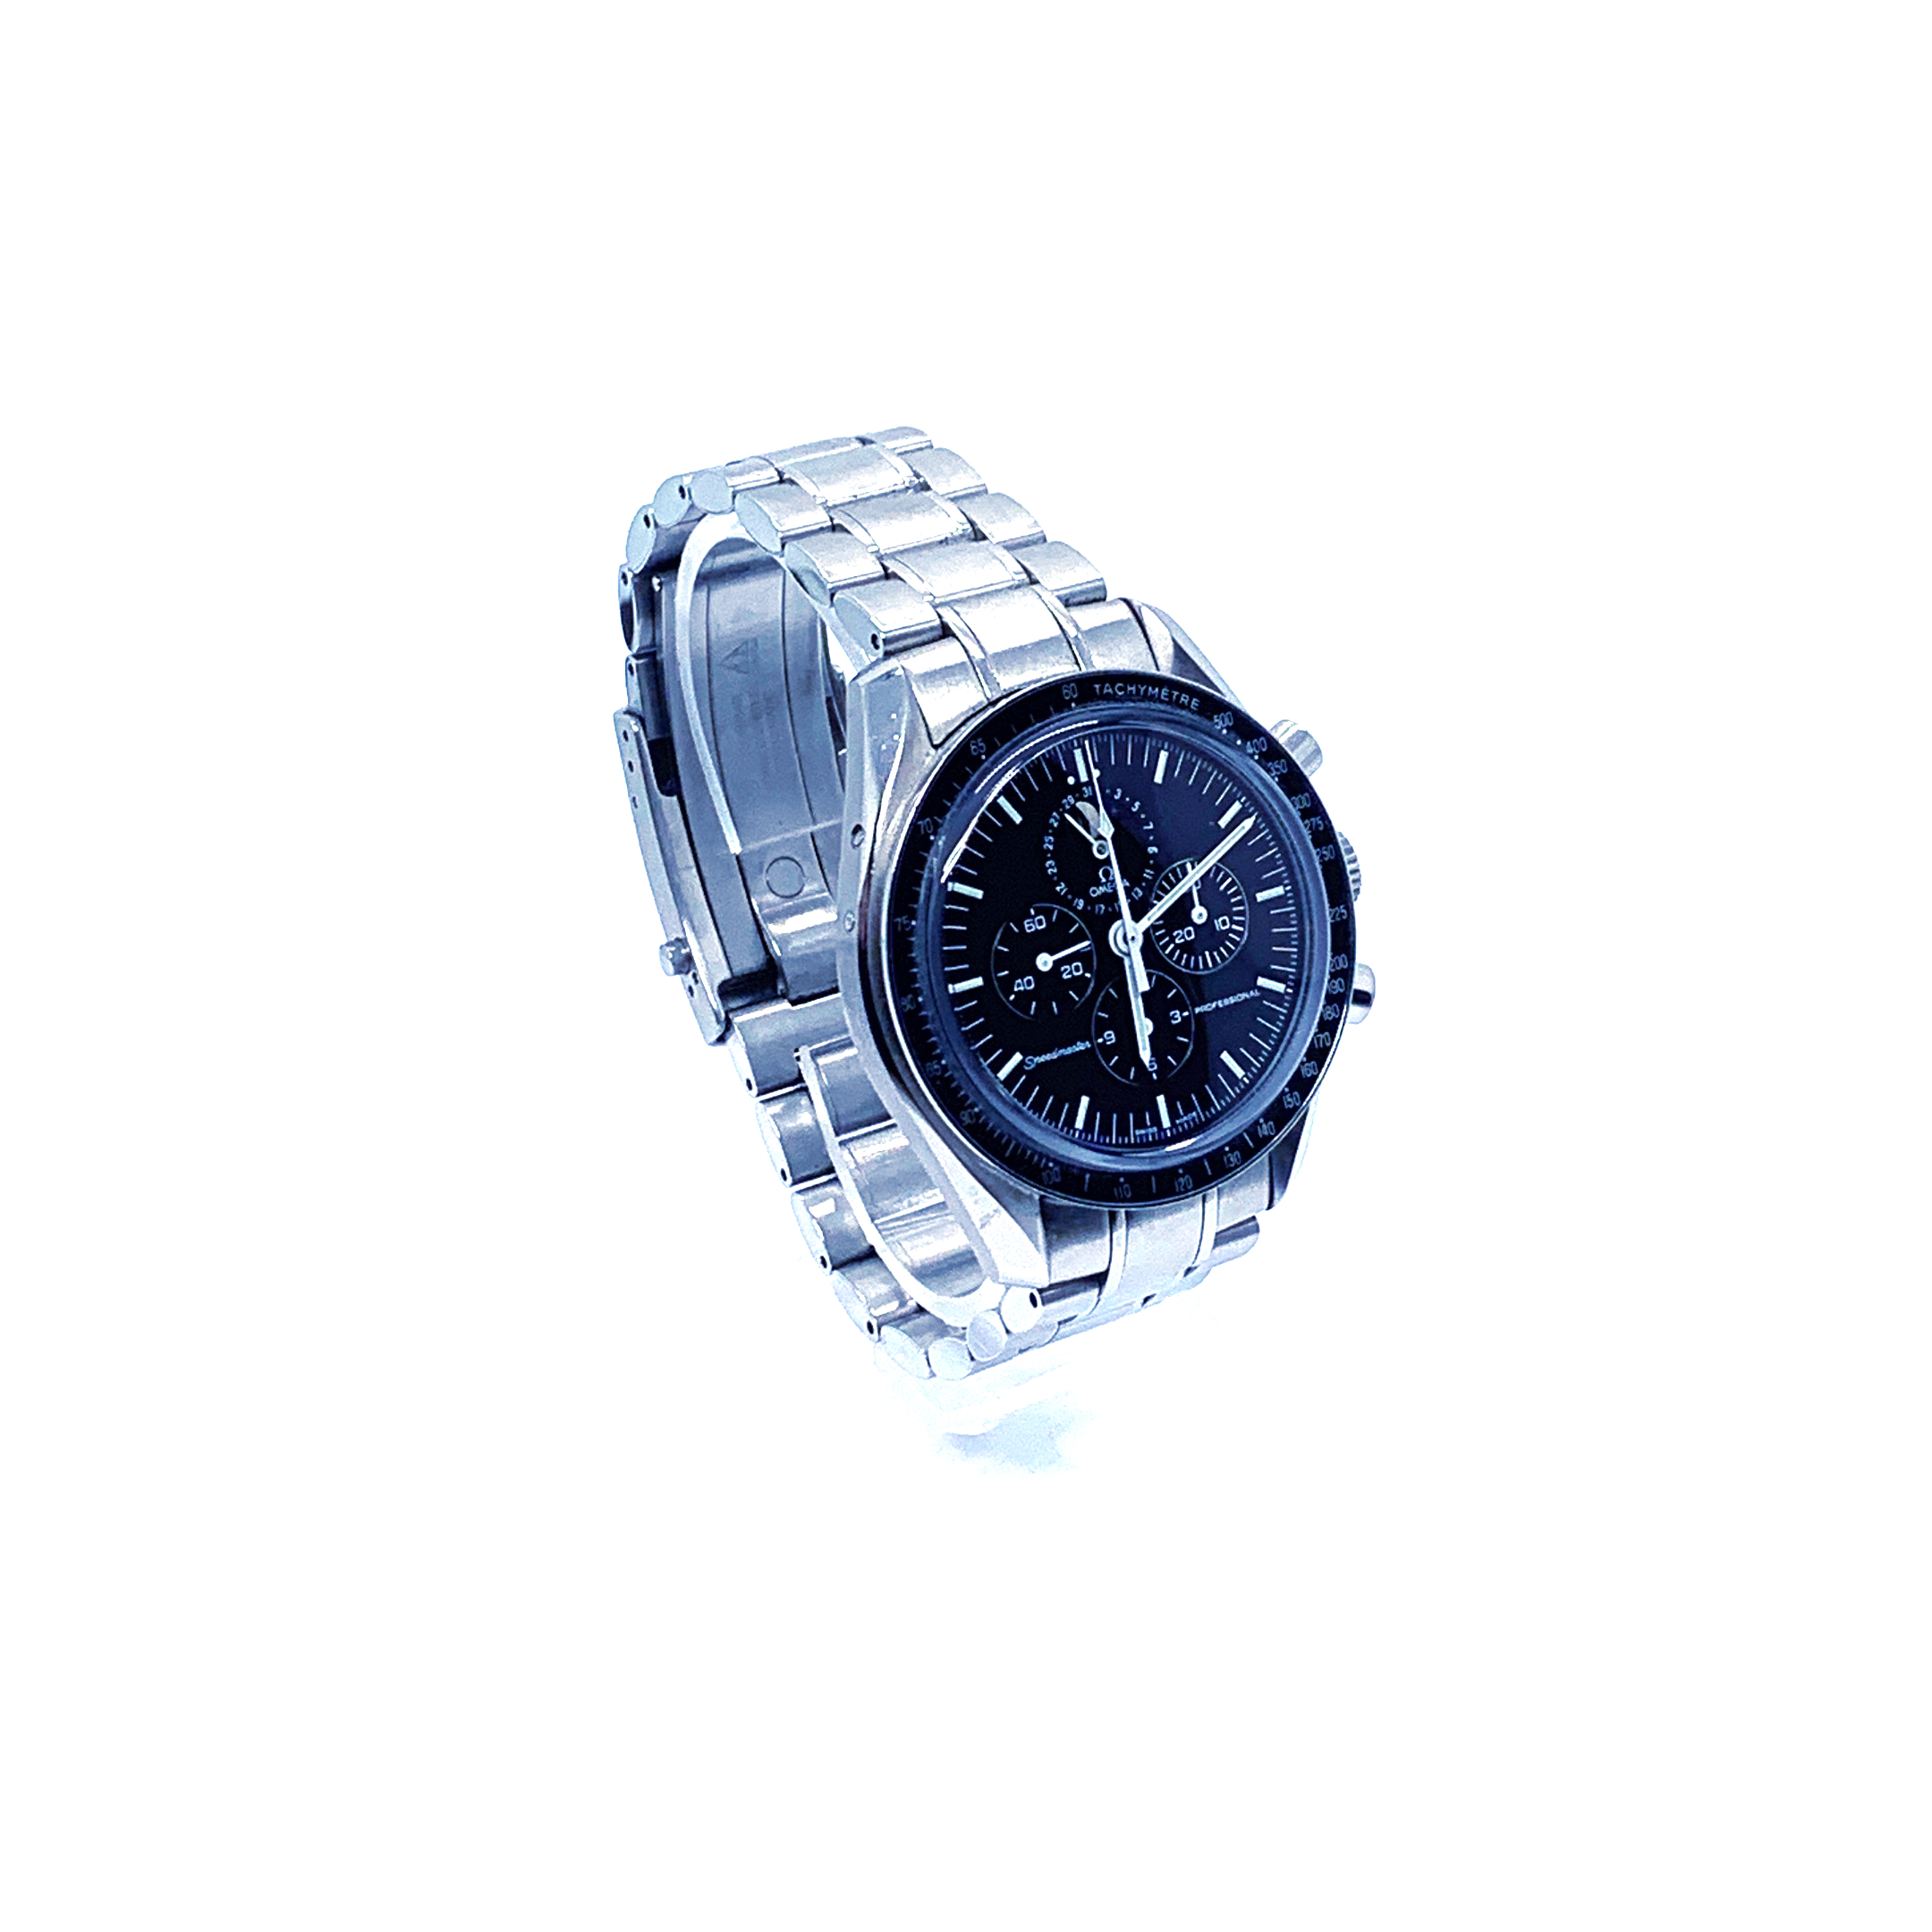 Speedmaster Moonphase // 3576.50.00